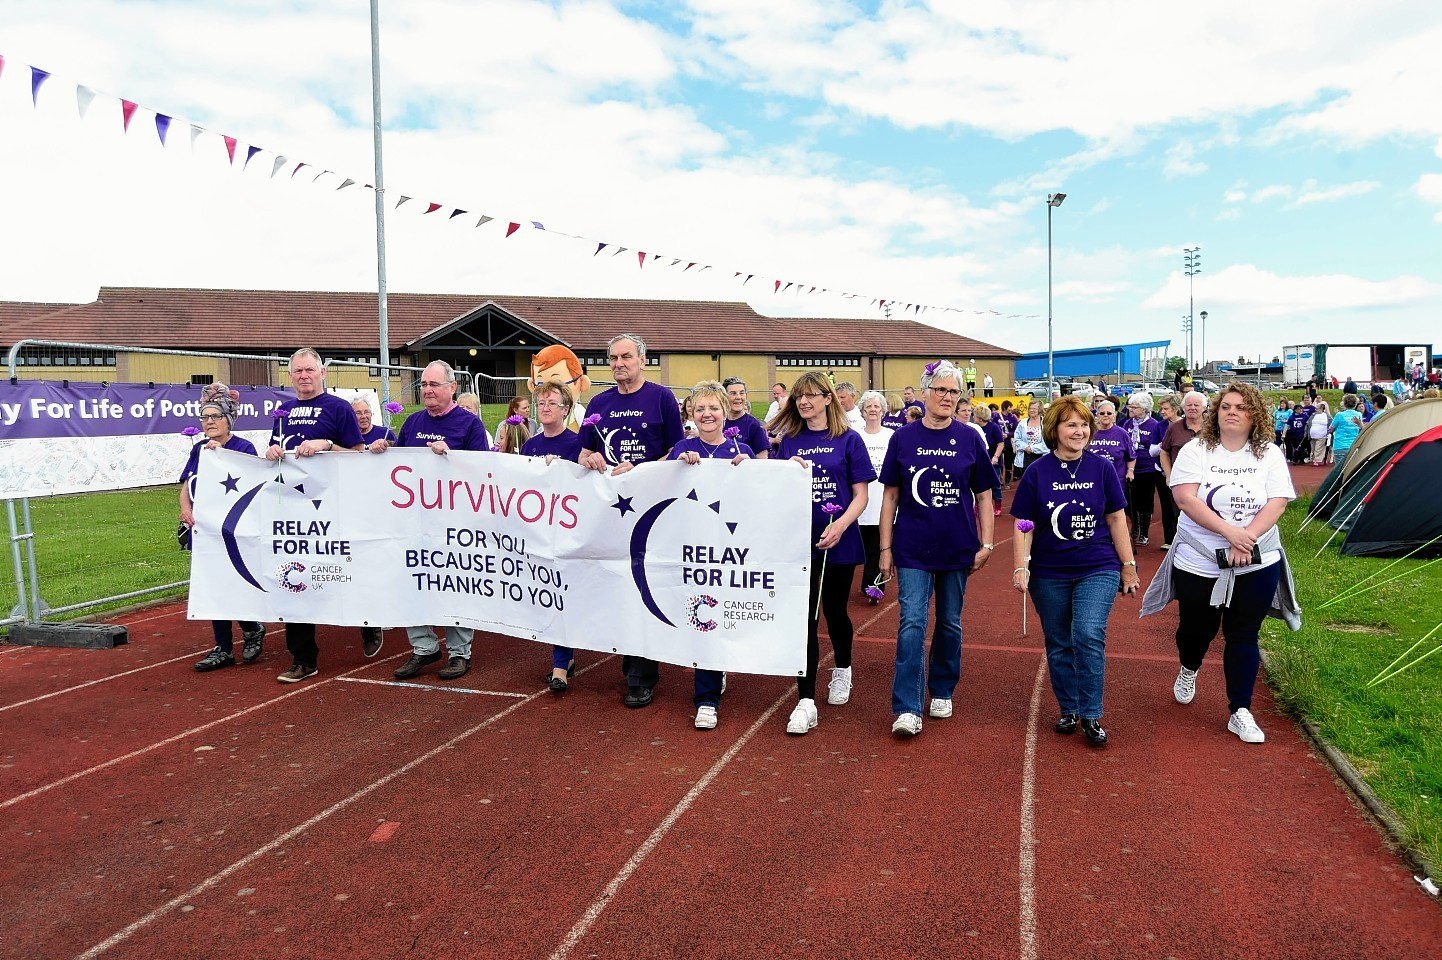 Survivors complete the lap of honour at Relay for Life